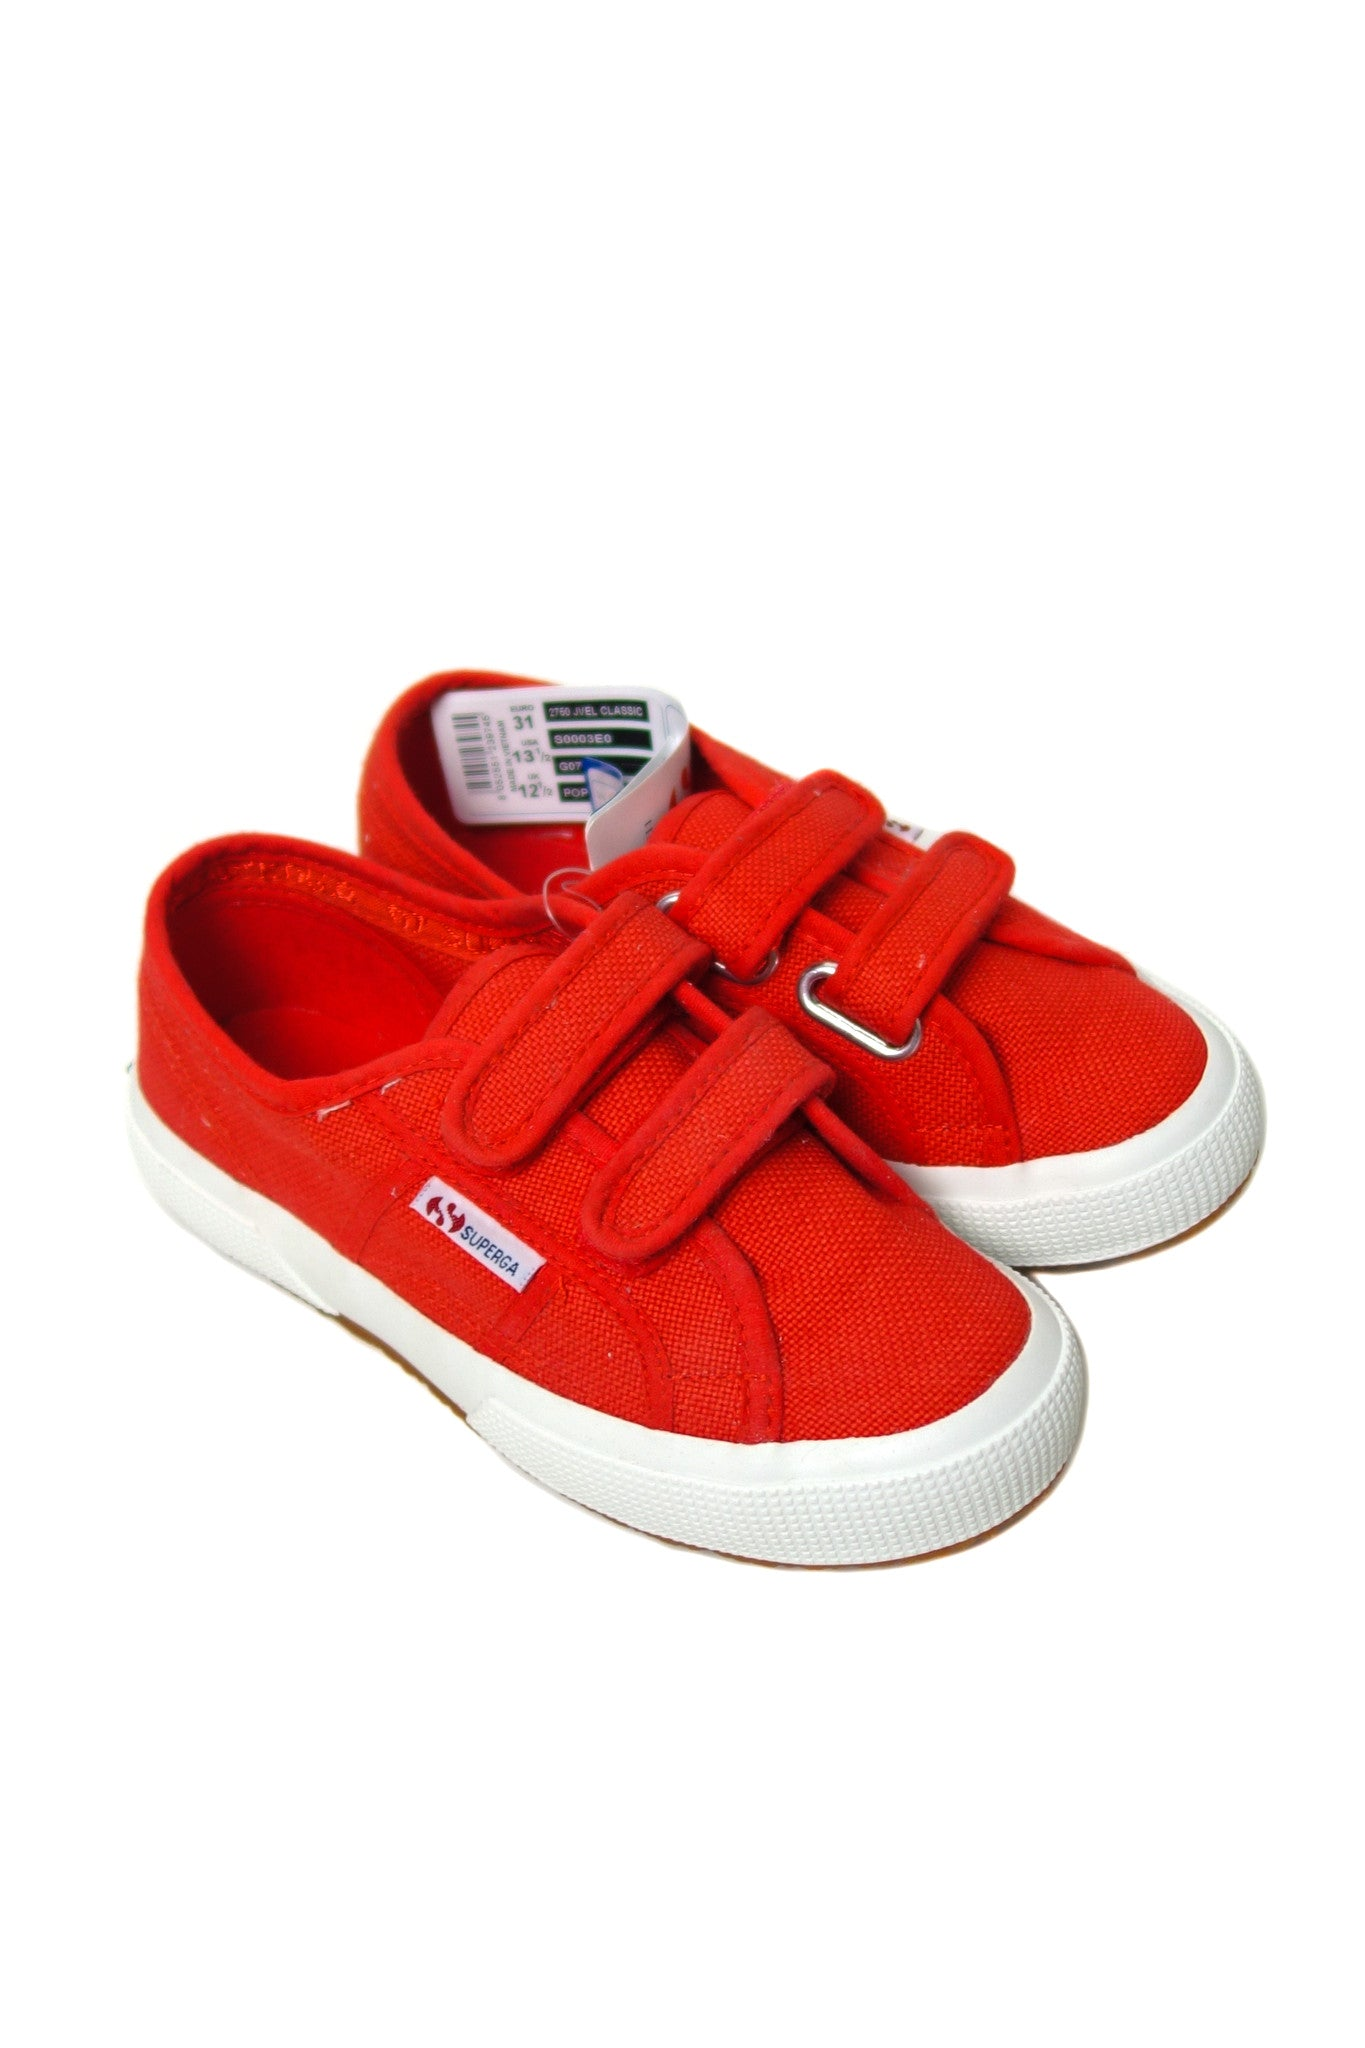 10002055 Superga Kids~Shoes 6T (EU 31) at Retykle